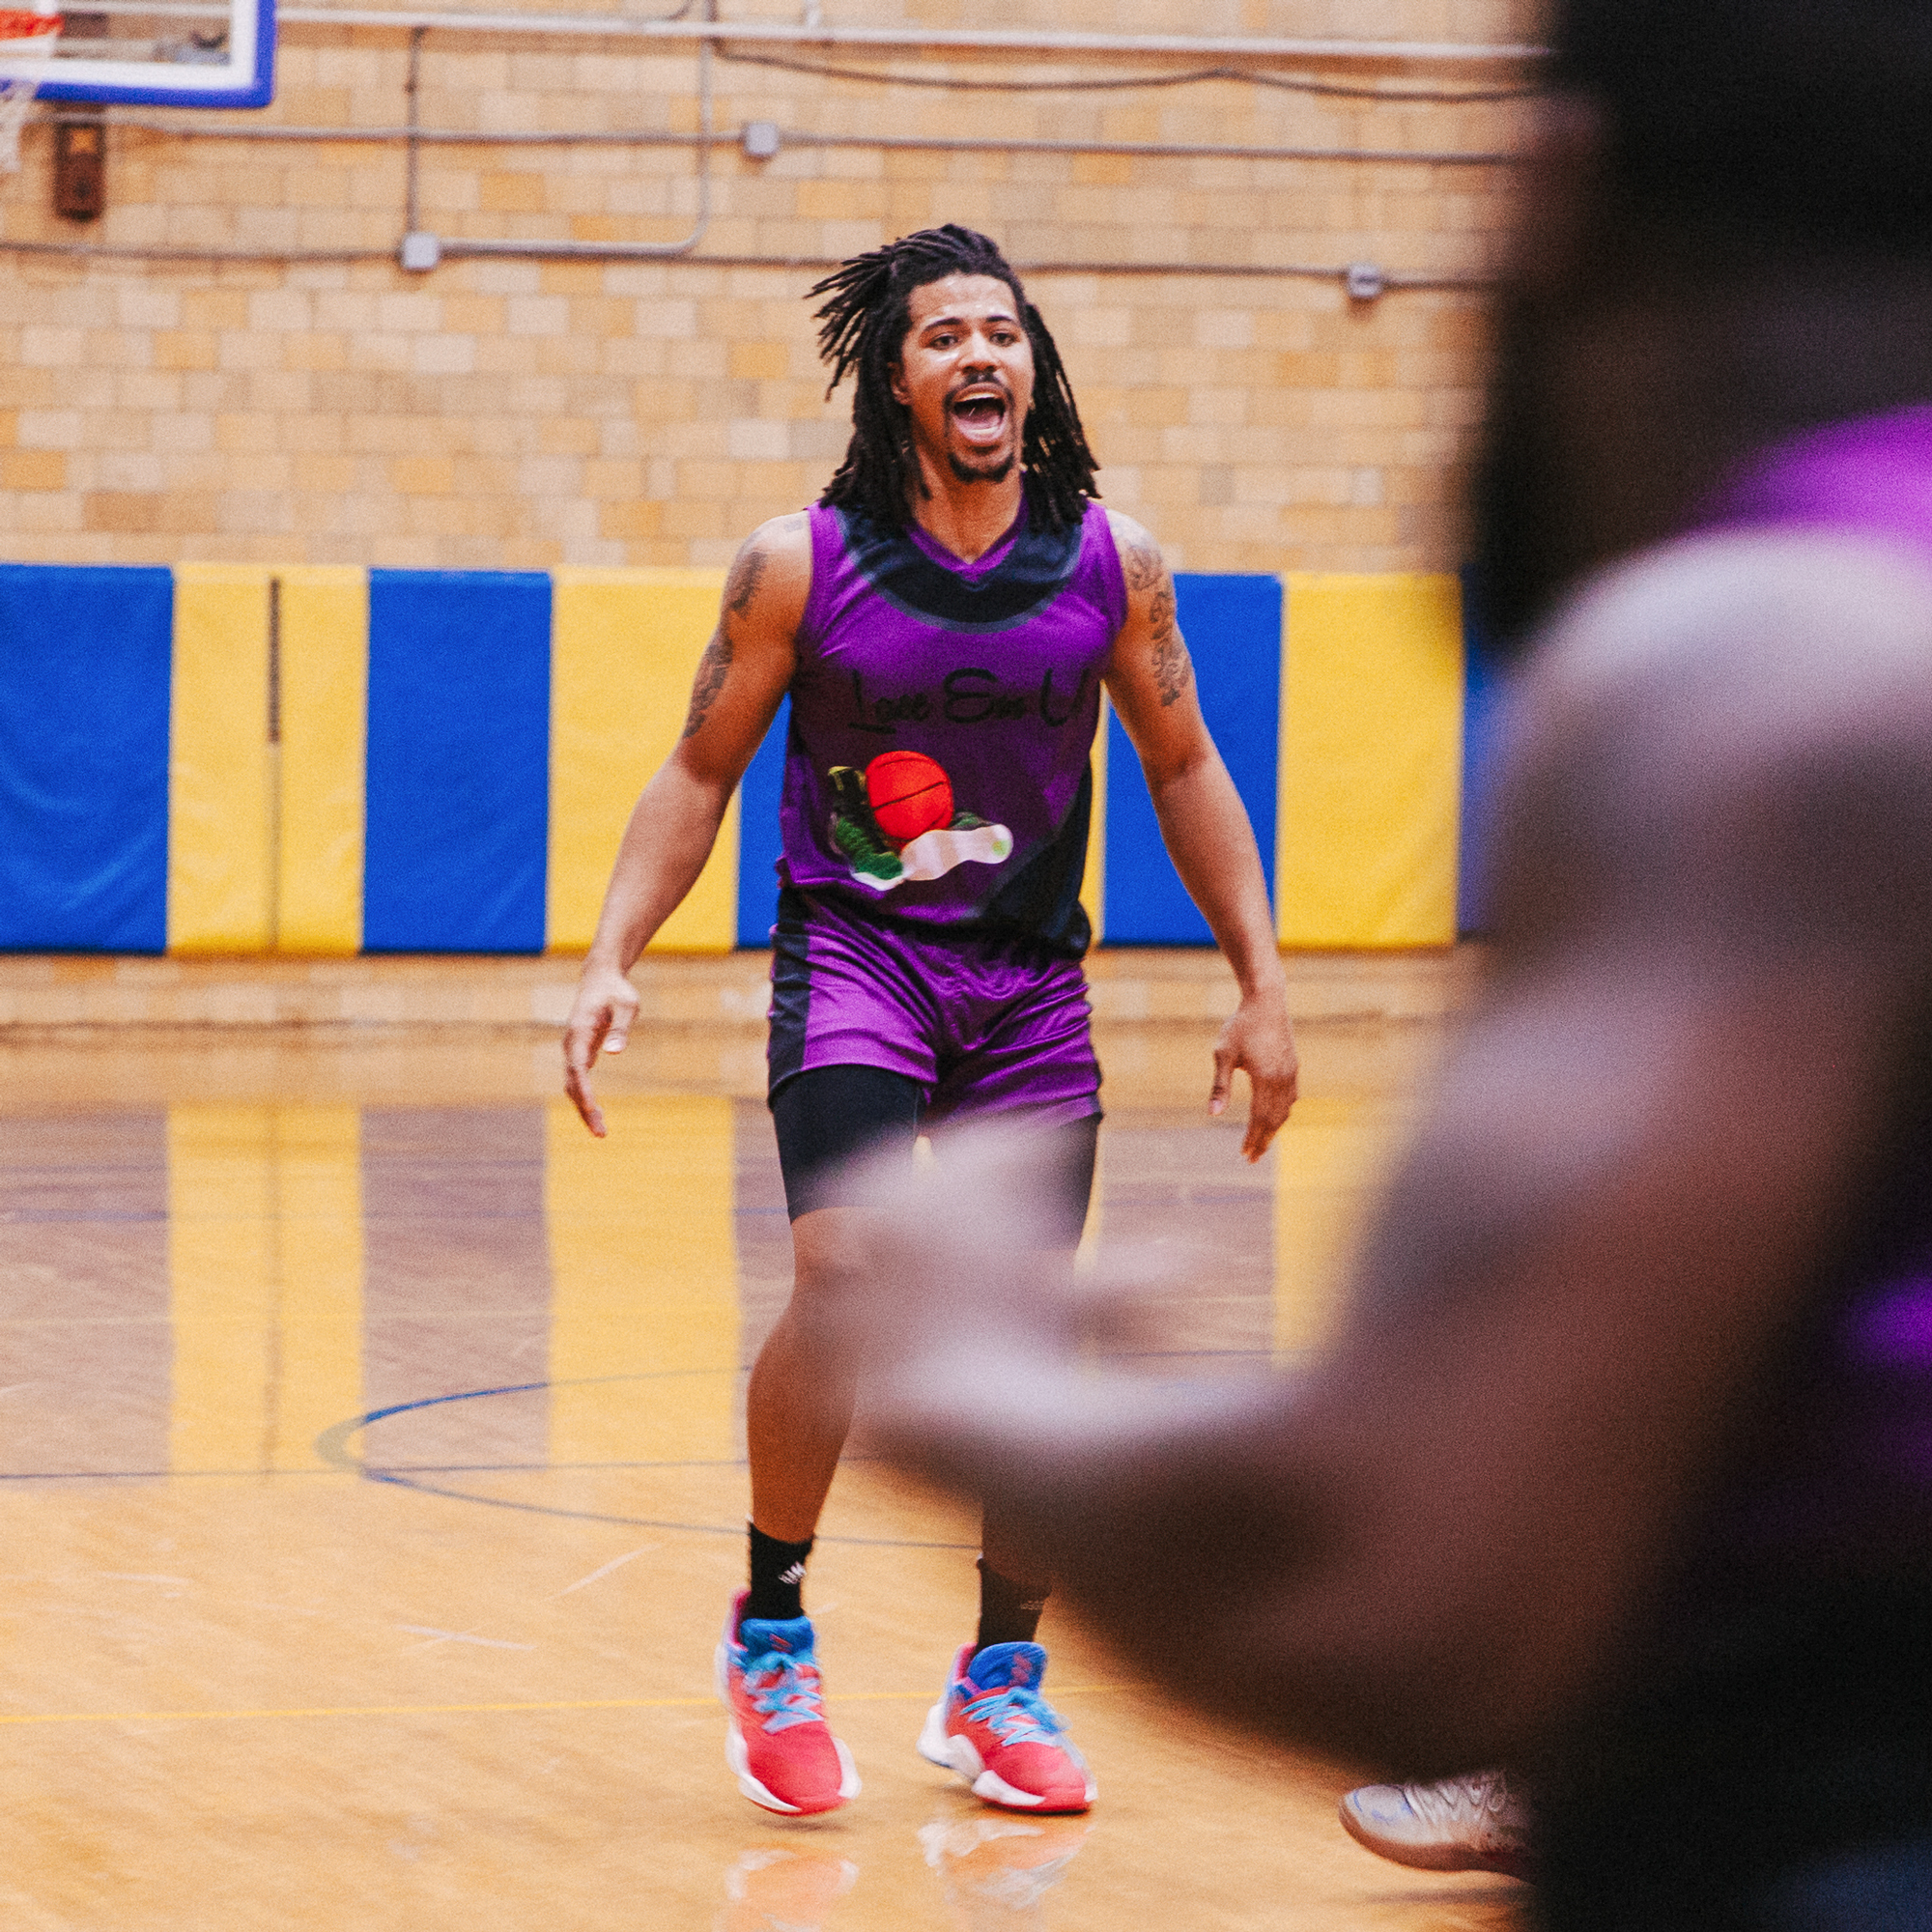 Lane Barlow from the Lace Em Up League, a recreational basketball league in Chicago.